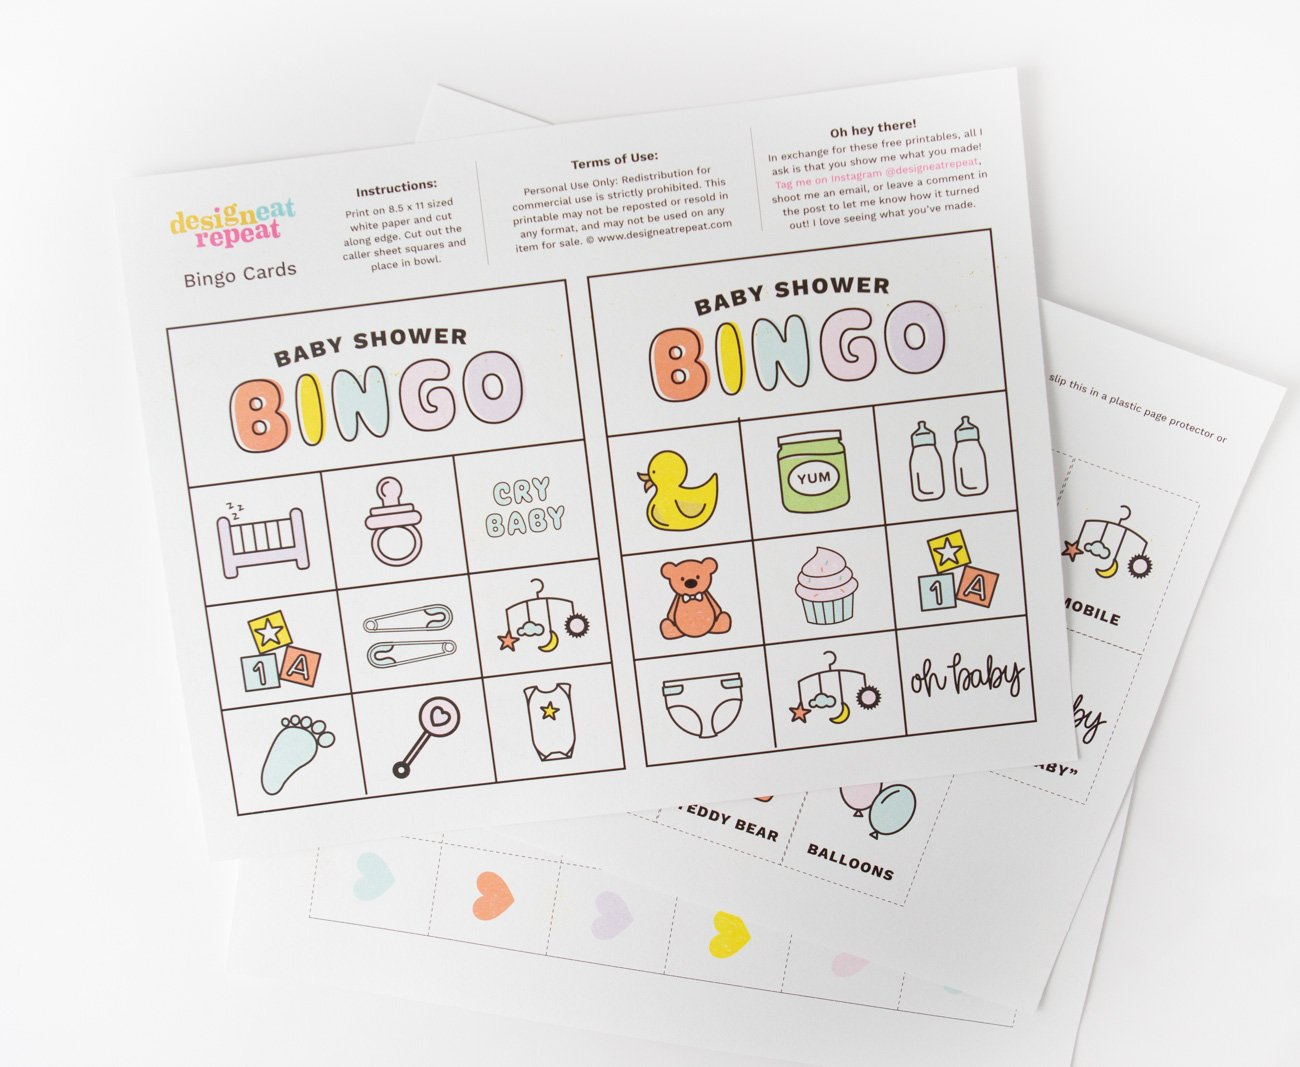 Printed sheet of baby shower bingo cardsa